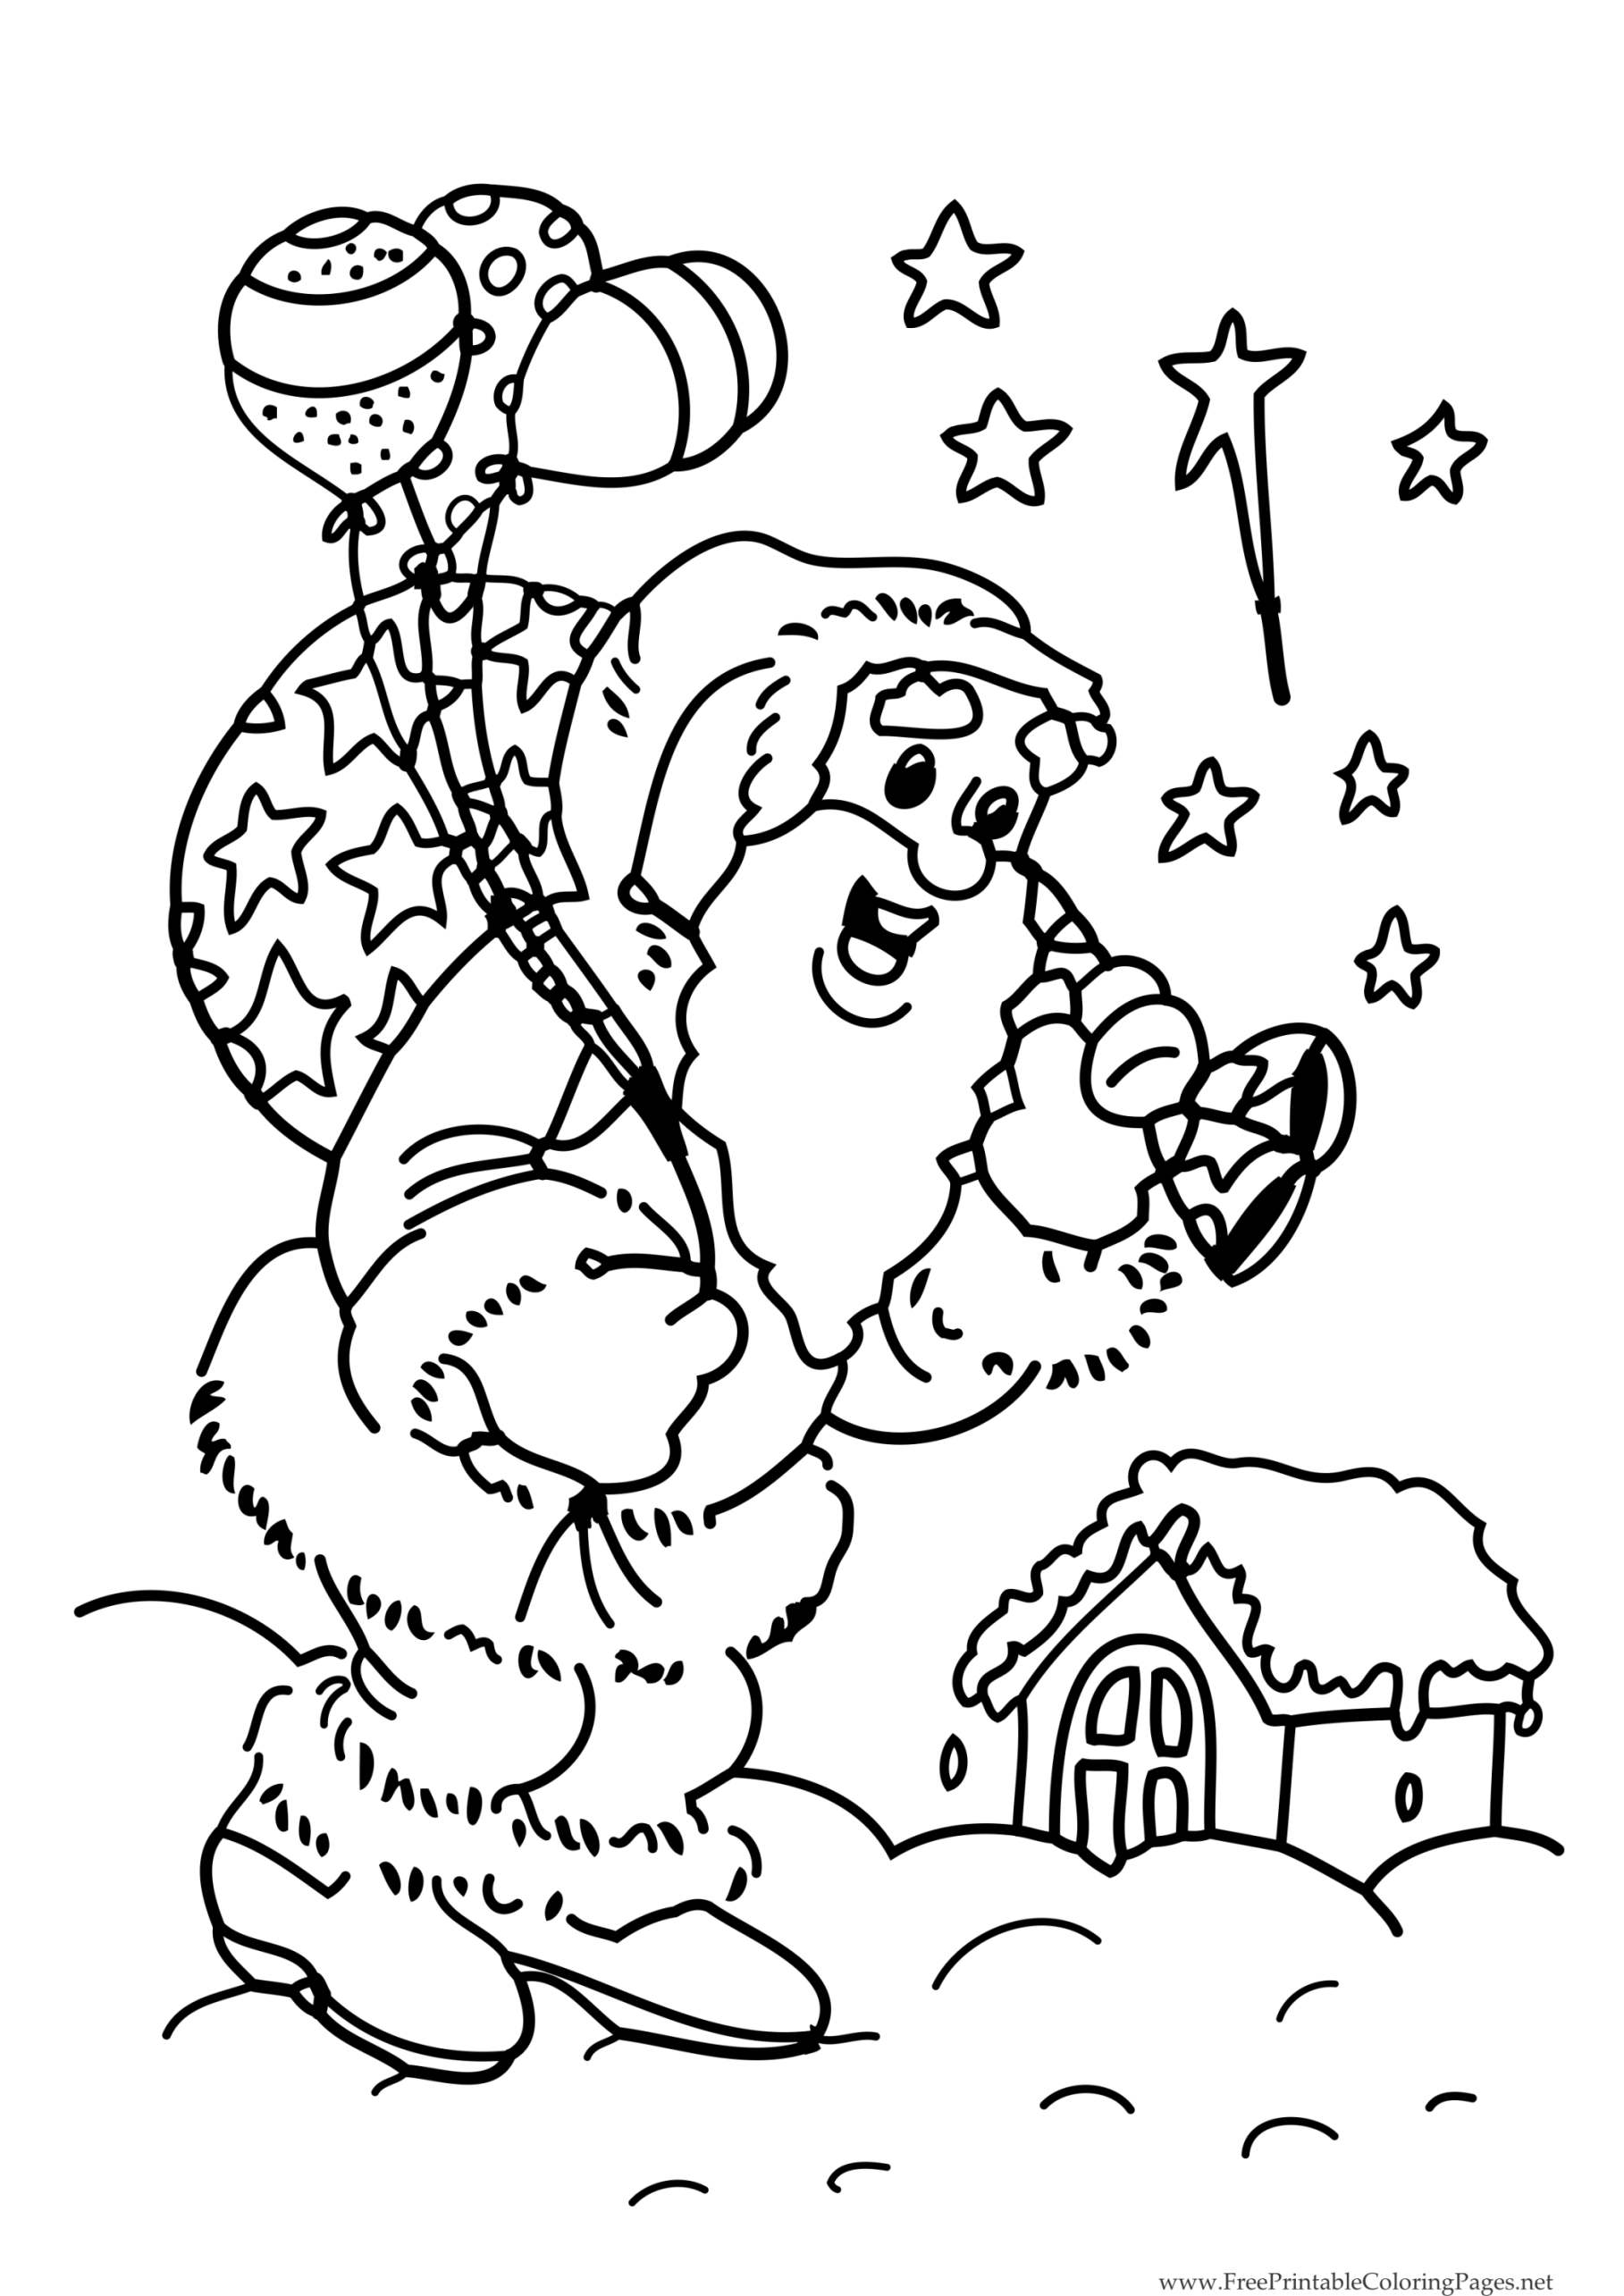 Santa claus bring gifts - Christmas Coloring pages for kids to print ...